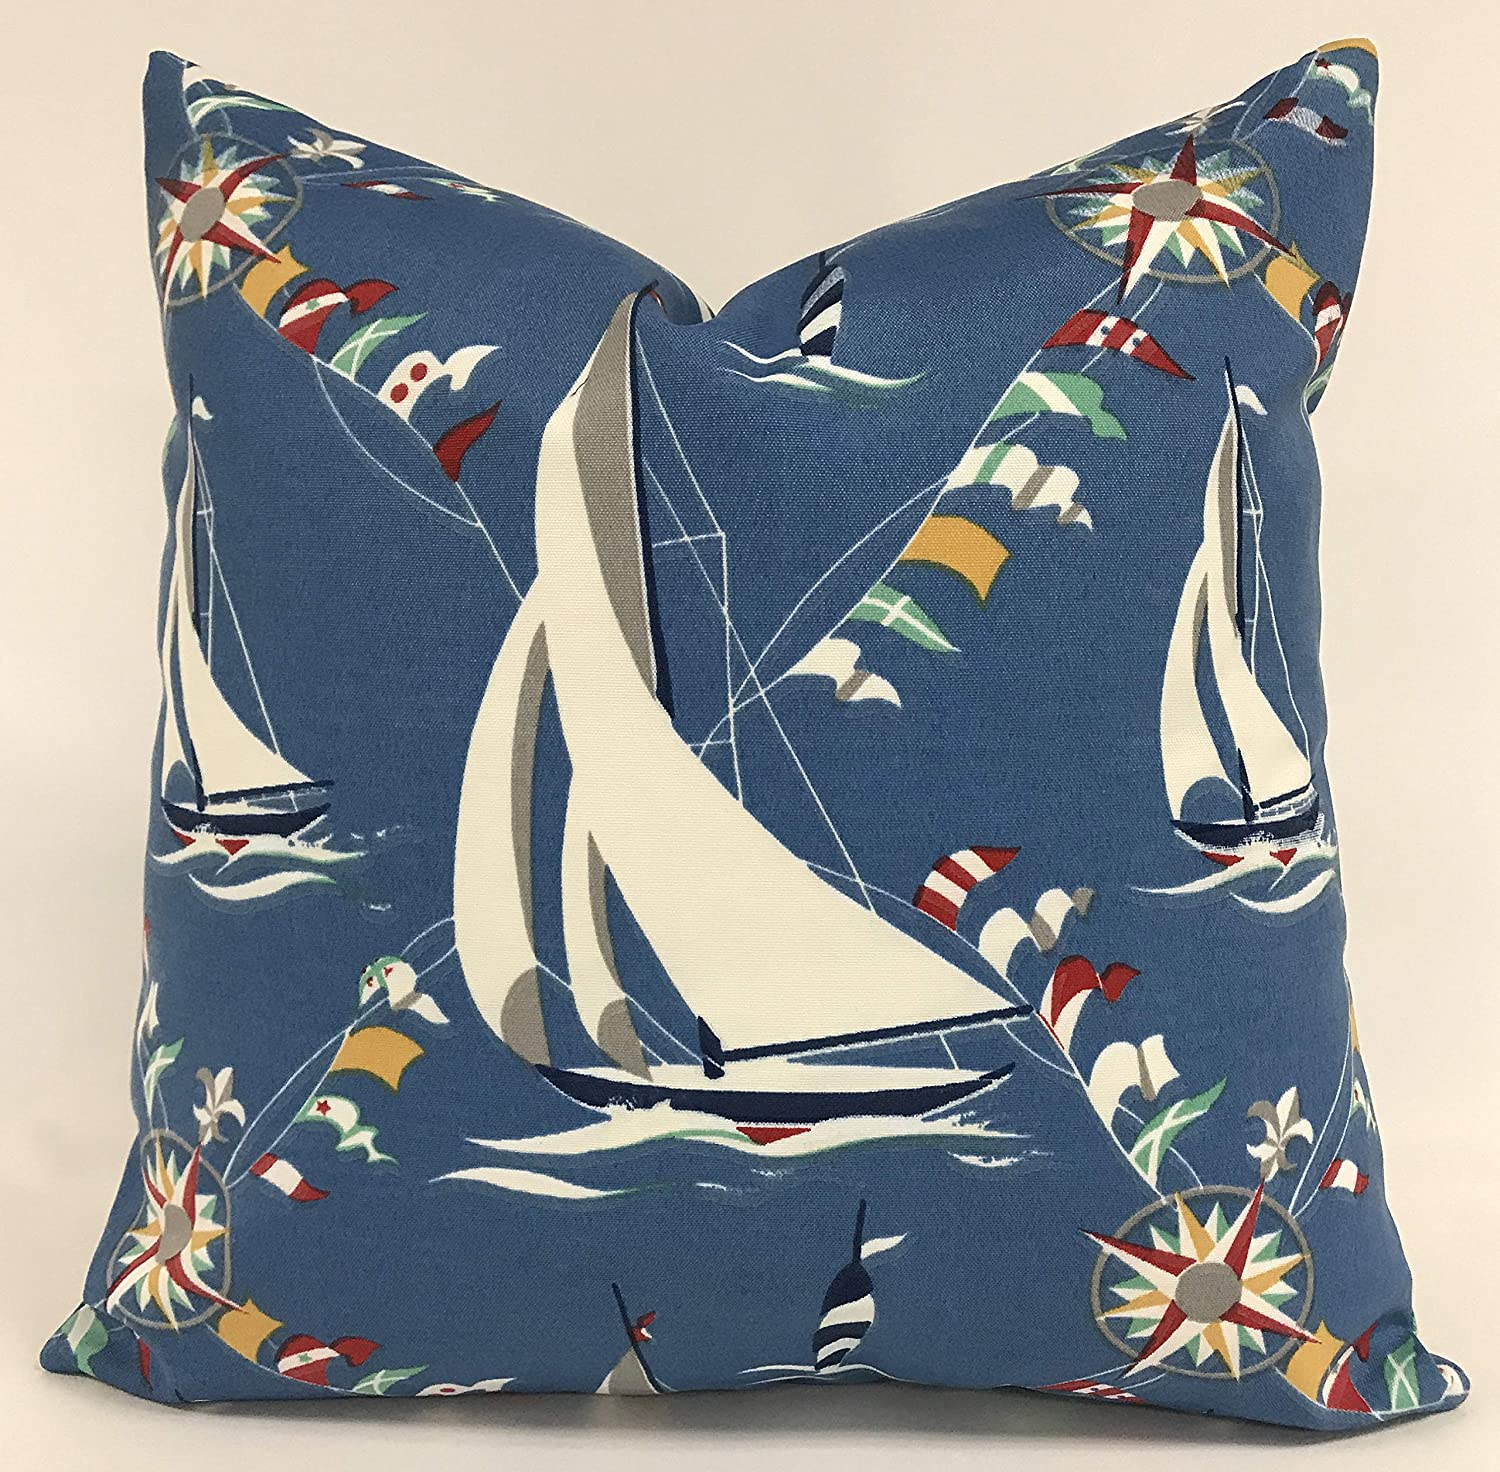 BYRON HOYLE Pillow Cover Max Special sale item 82% OFF Sailboat Outdoor Nautical